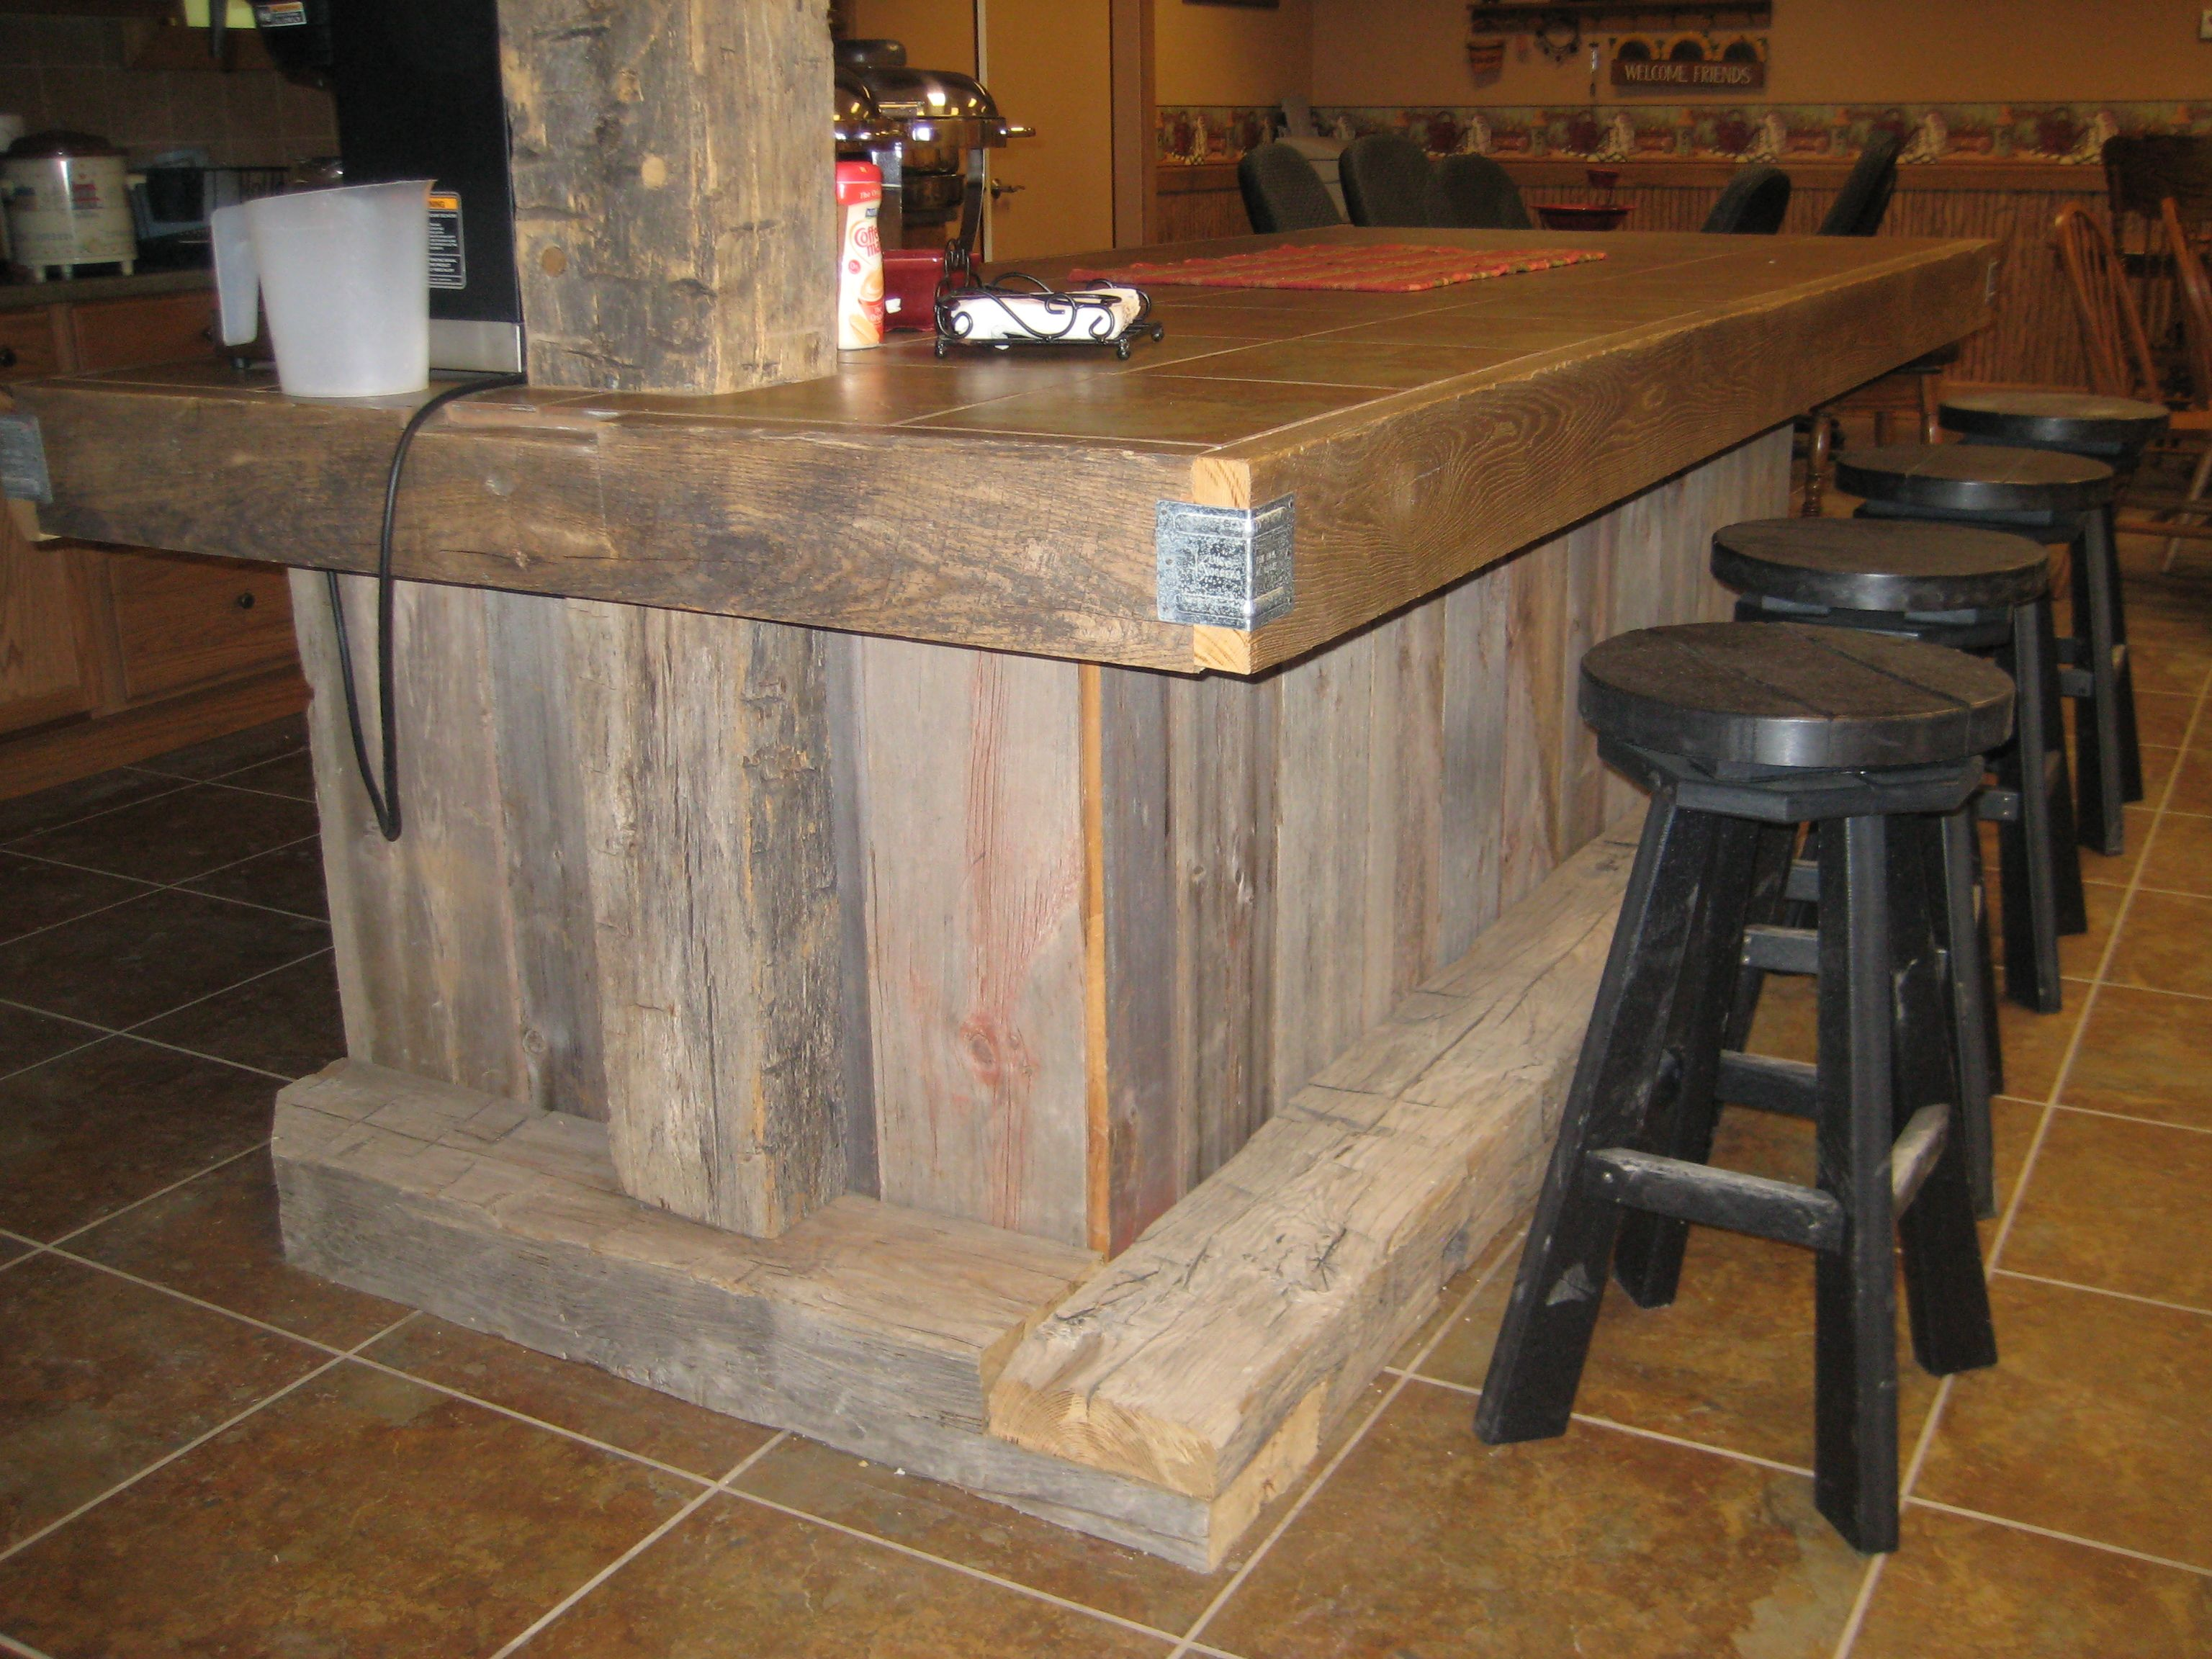 a great way to incorporate barnwood into a kitchen island. the tile